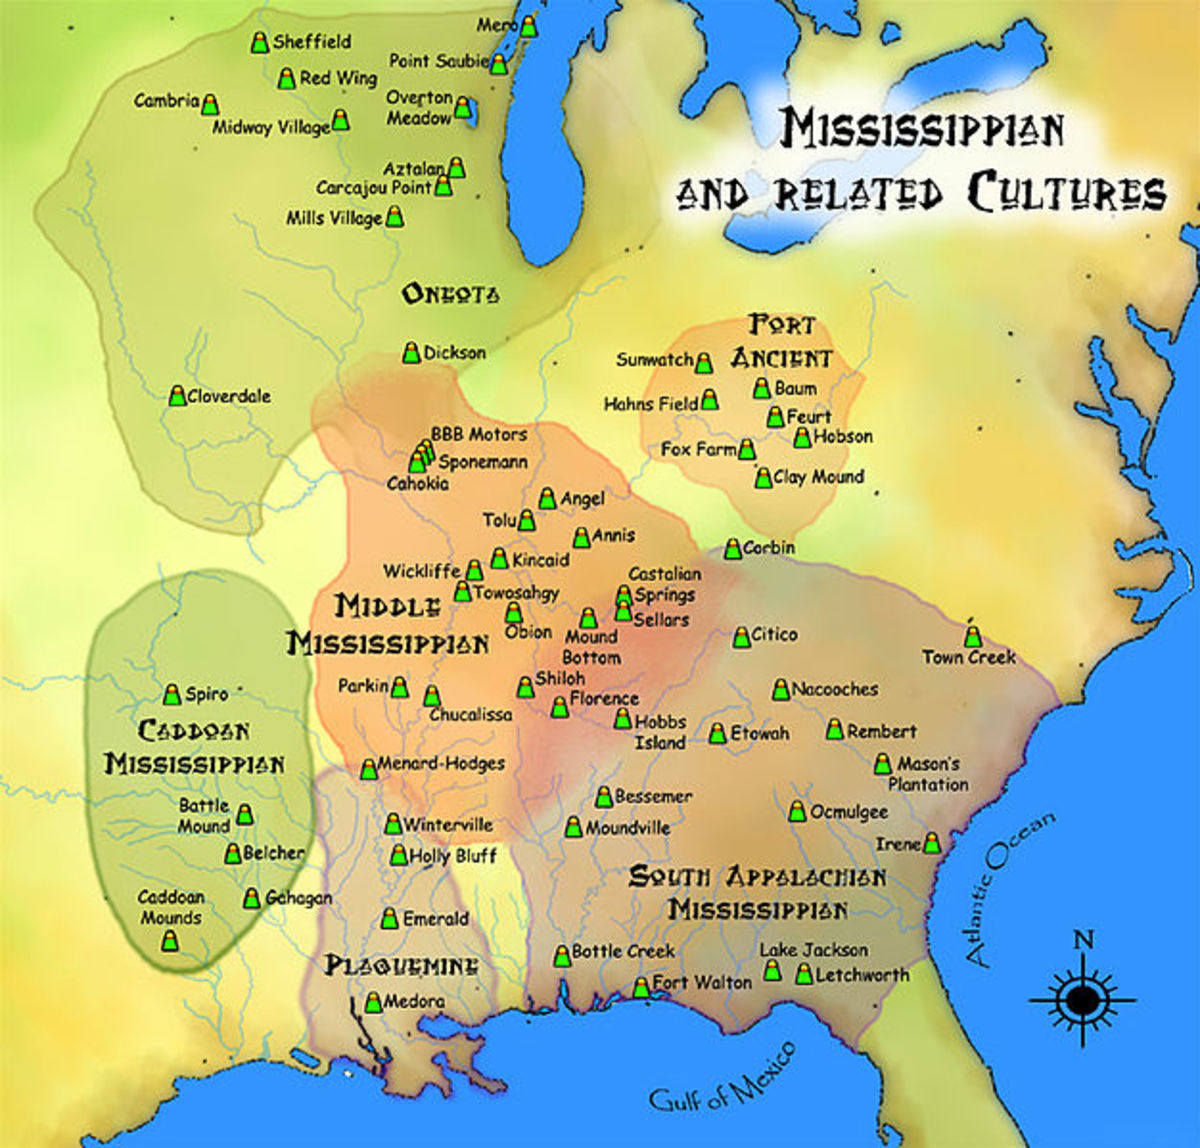 Map showing Mississippian and related cultures that existed prior to European contact.